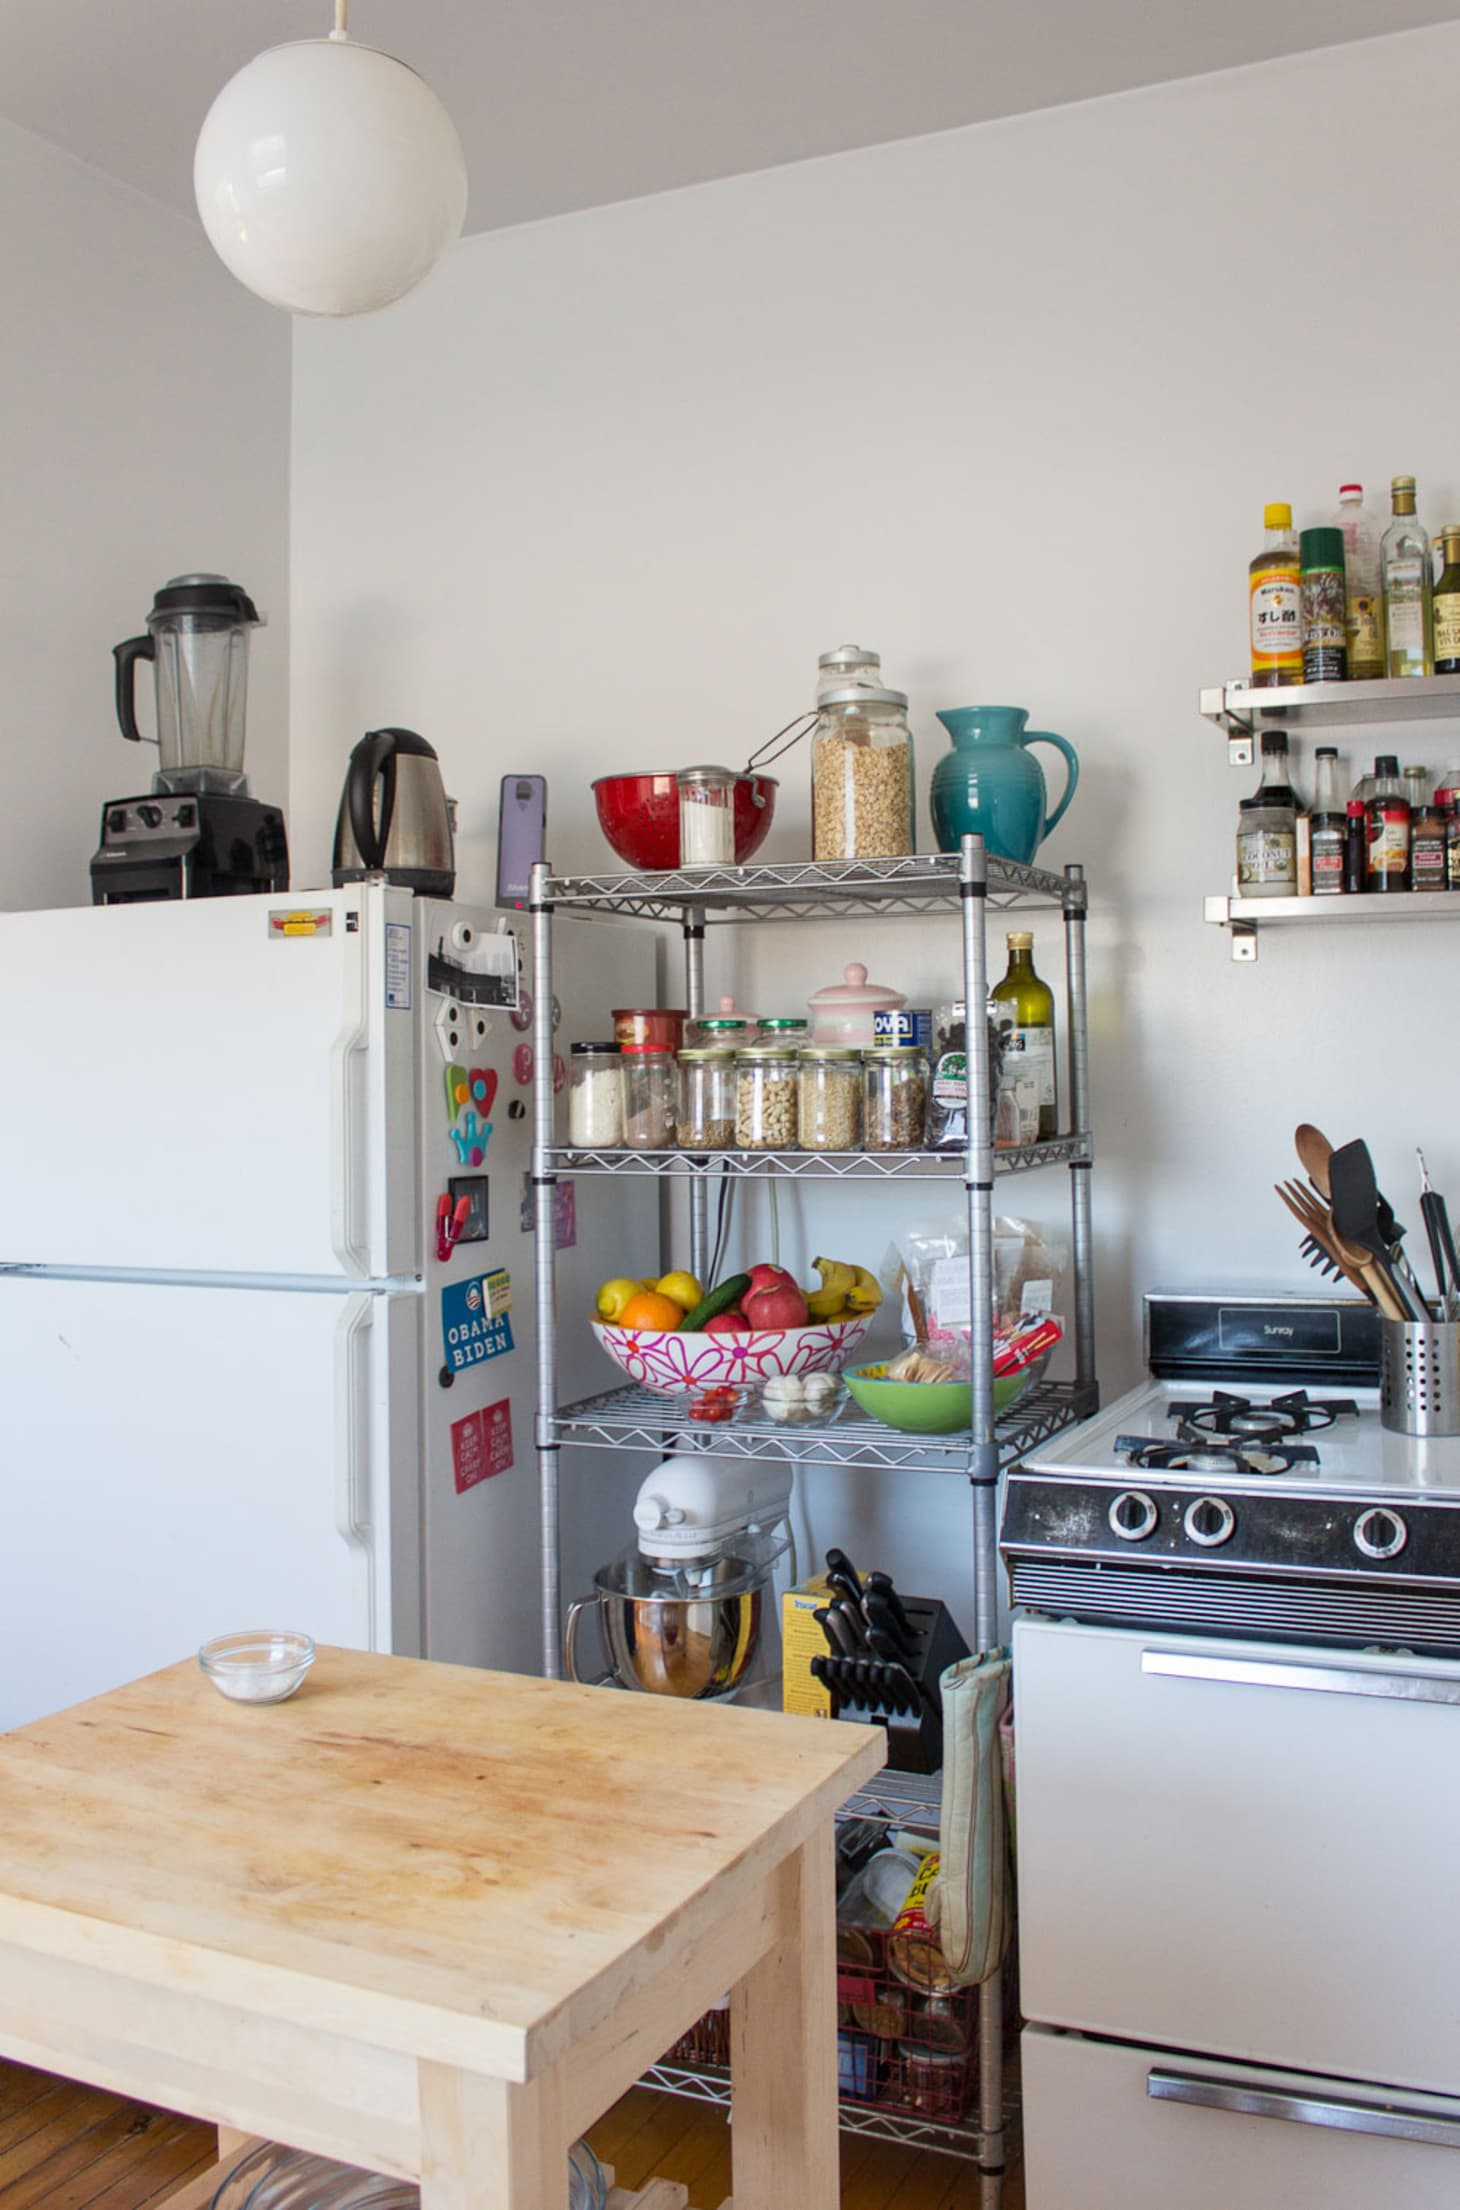 10 Adorable Cooking Tools Organizing Ideas For Mess